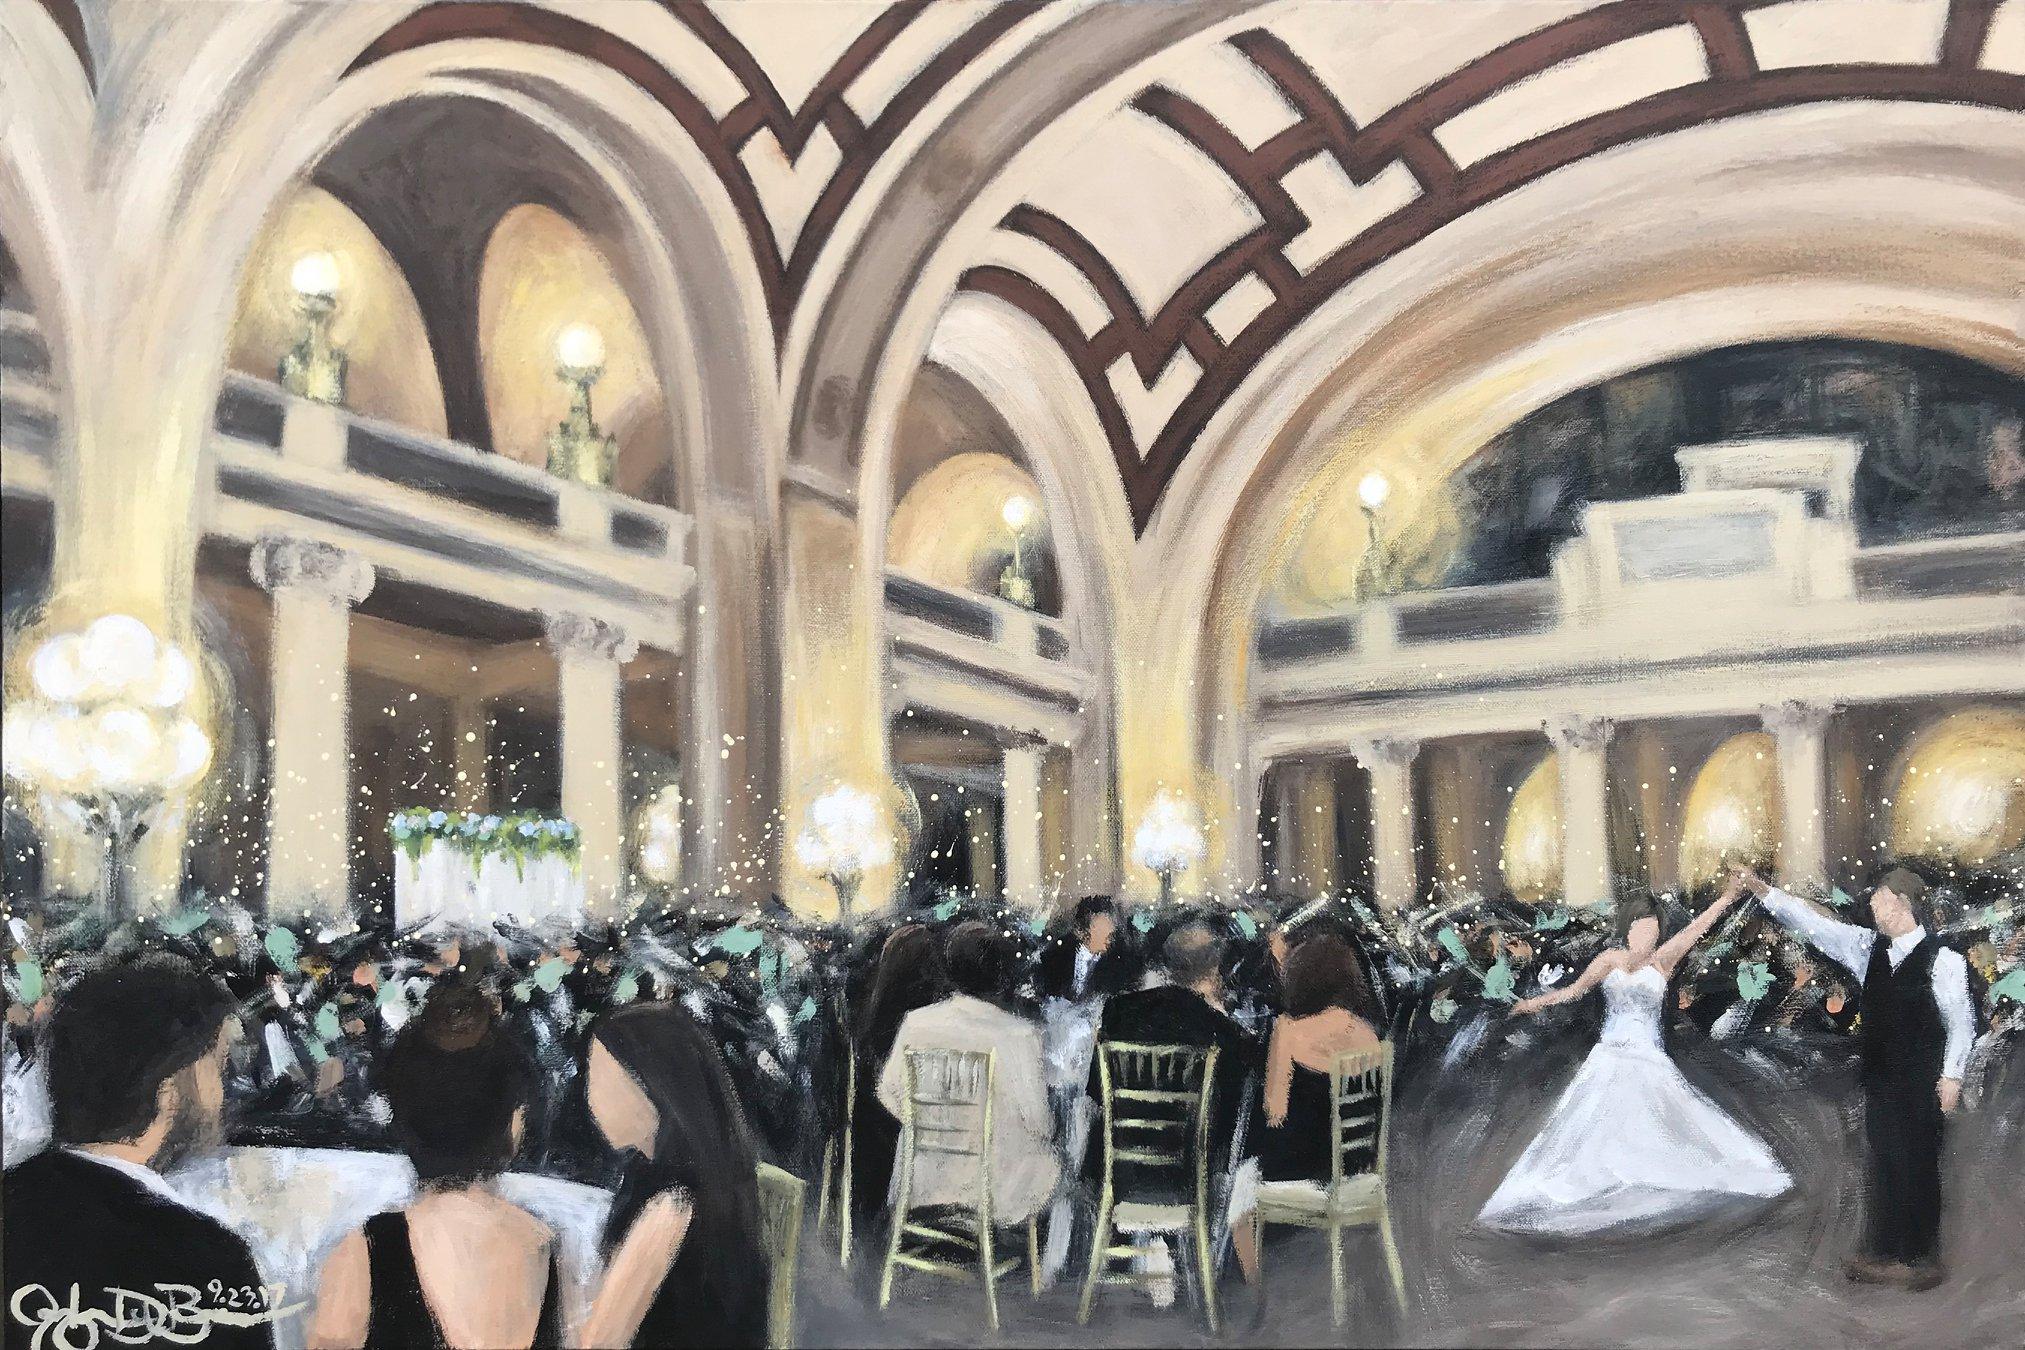 Live Wedding Painting // by Cleveland Event Painter Jacqueline DelBrocco //  The Old Courthouse  // Cleveland, OH //24x36in acrylic on canvas // Source photo cred for bride and groom portrait: One Red Door Photography